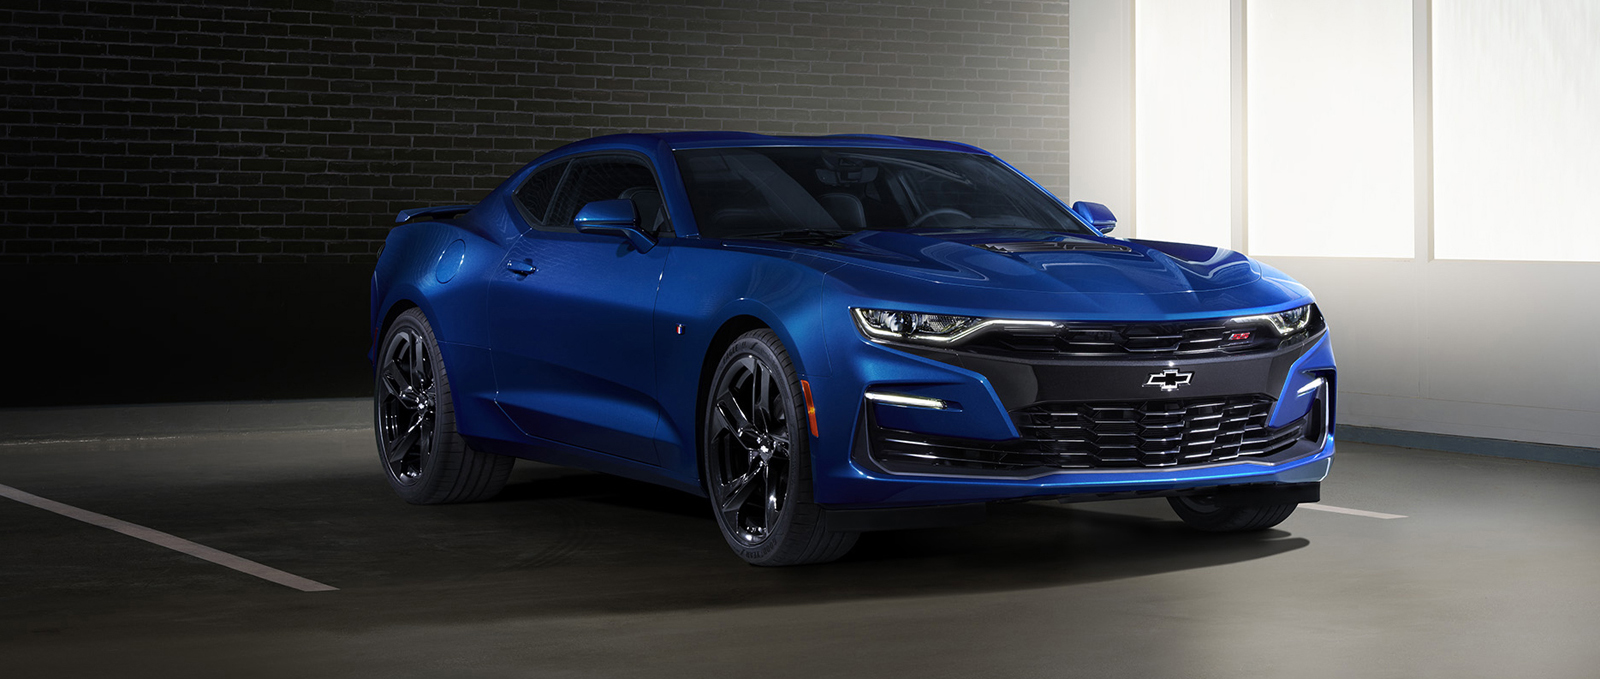 and s chevrolet anniversary review camaro touring special edition pro devil original red news car driver reviews photo